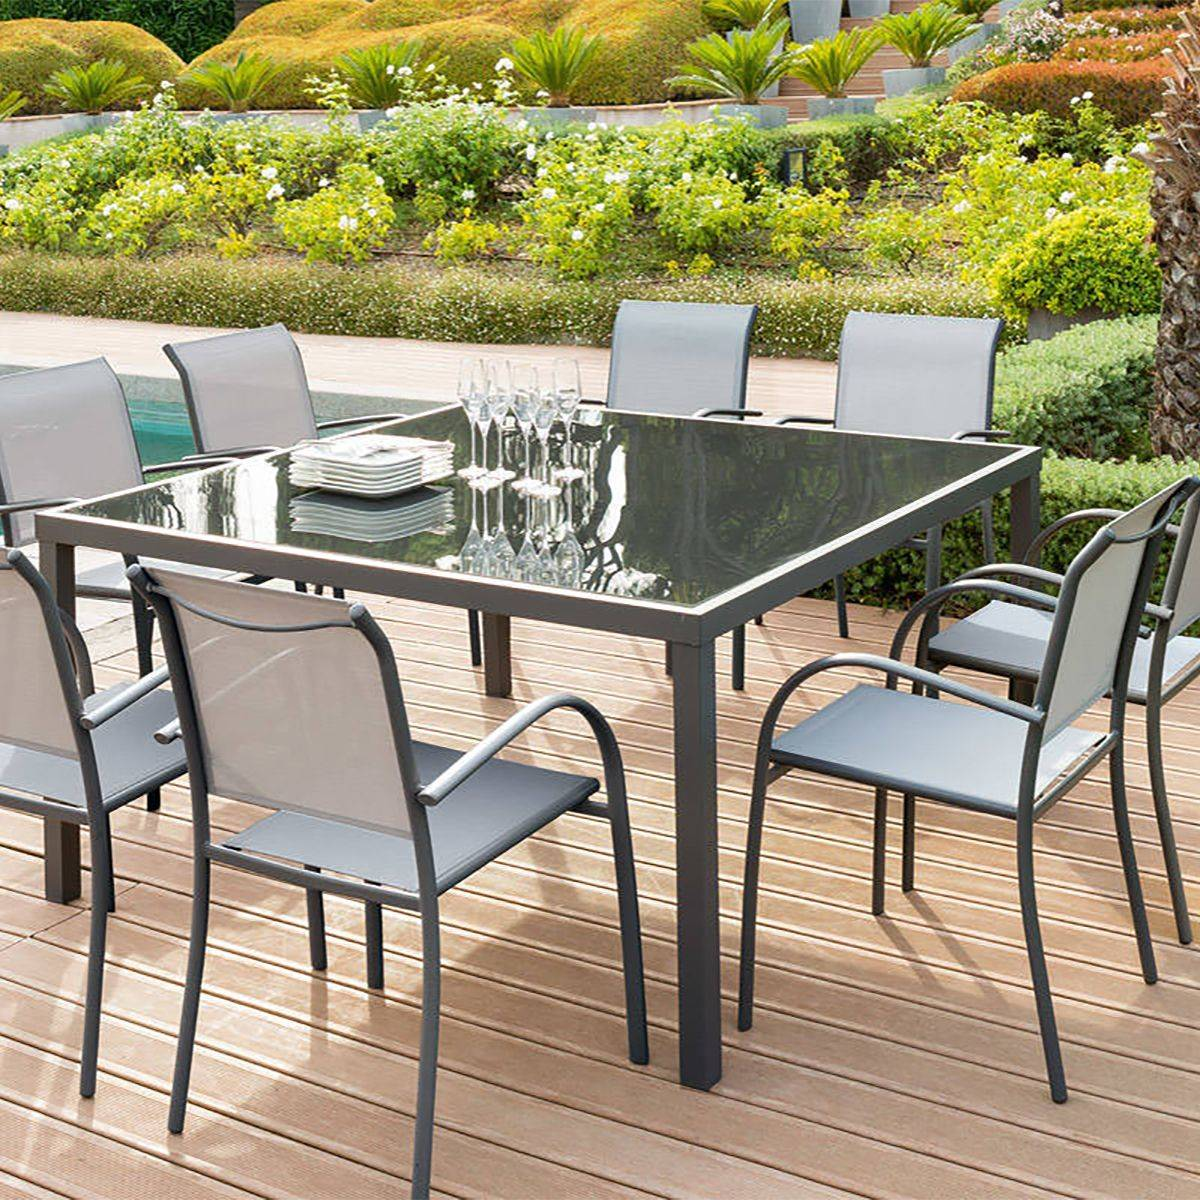 Salon De Jardin Chez Amazon Table Carrée Piazza Verre Anthracite Graphite Hespéride 8